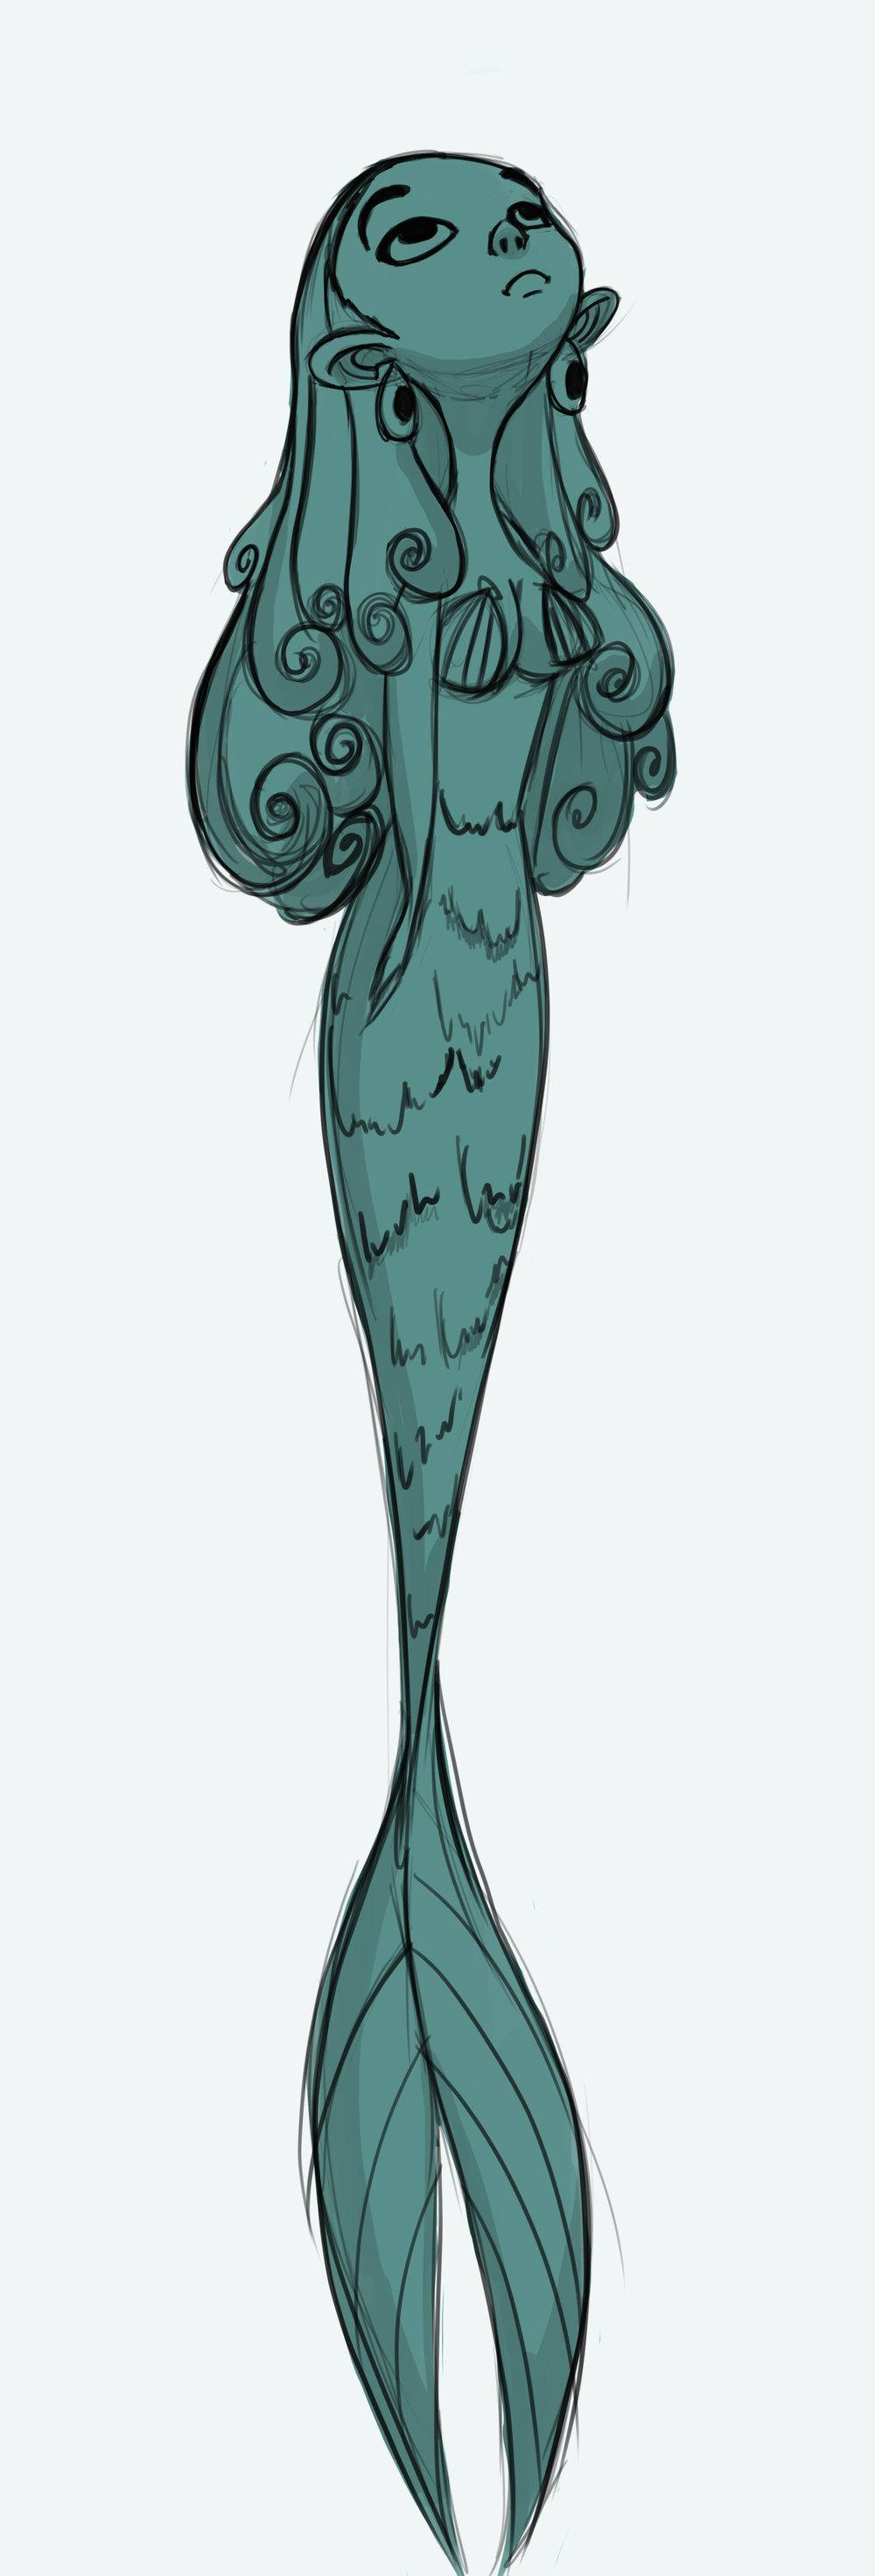 mermaiddone.jpg